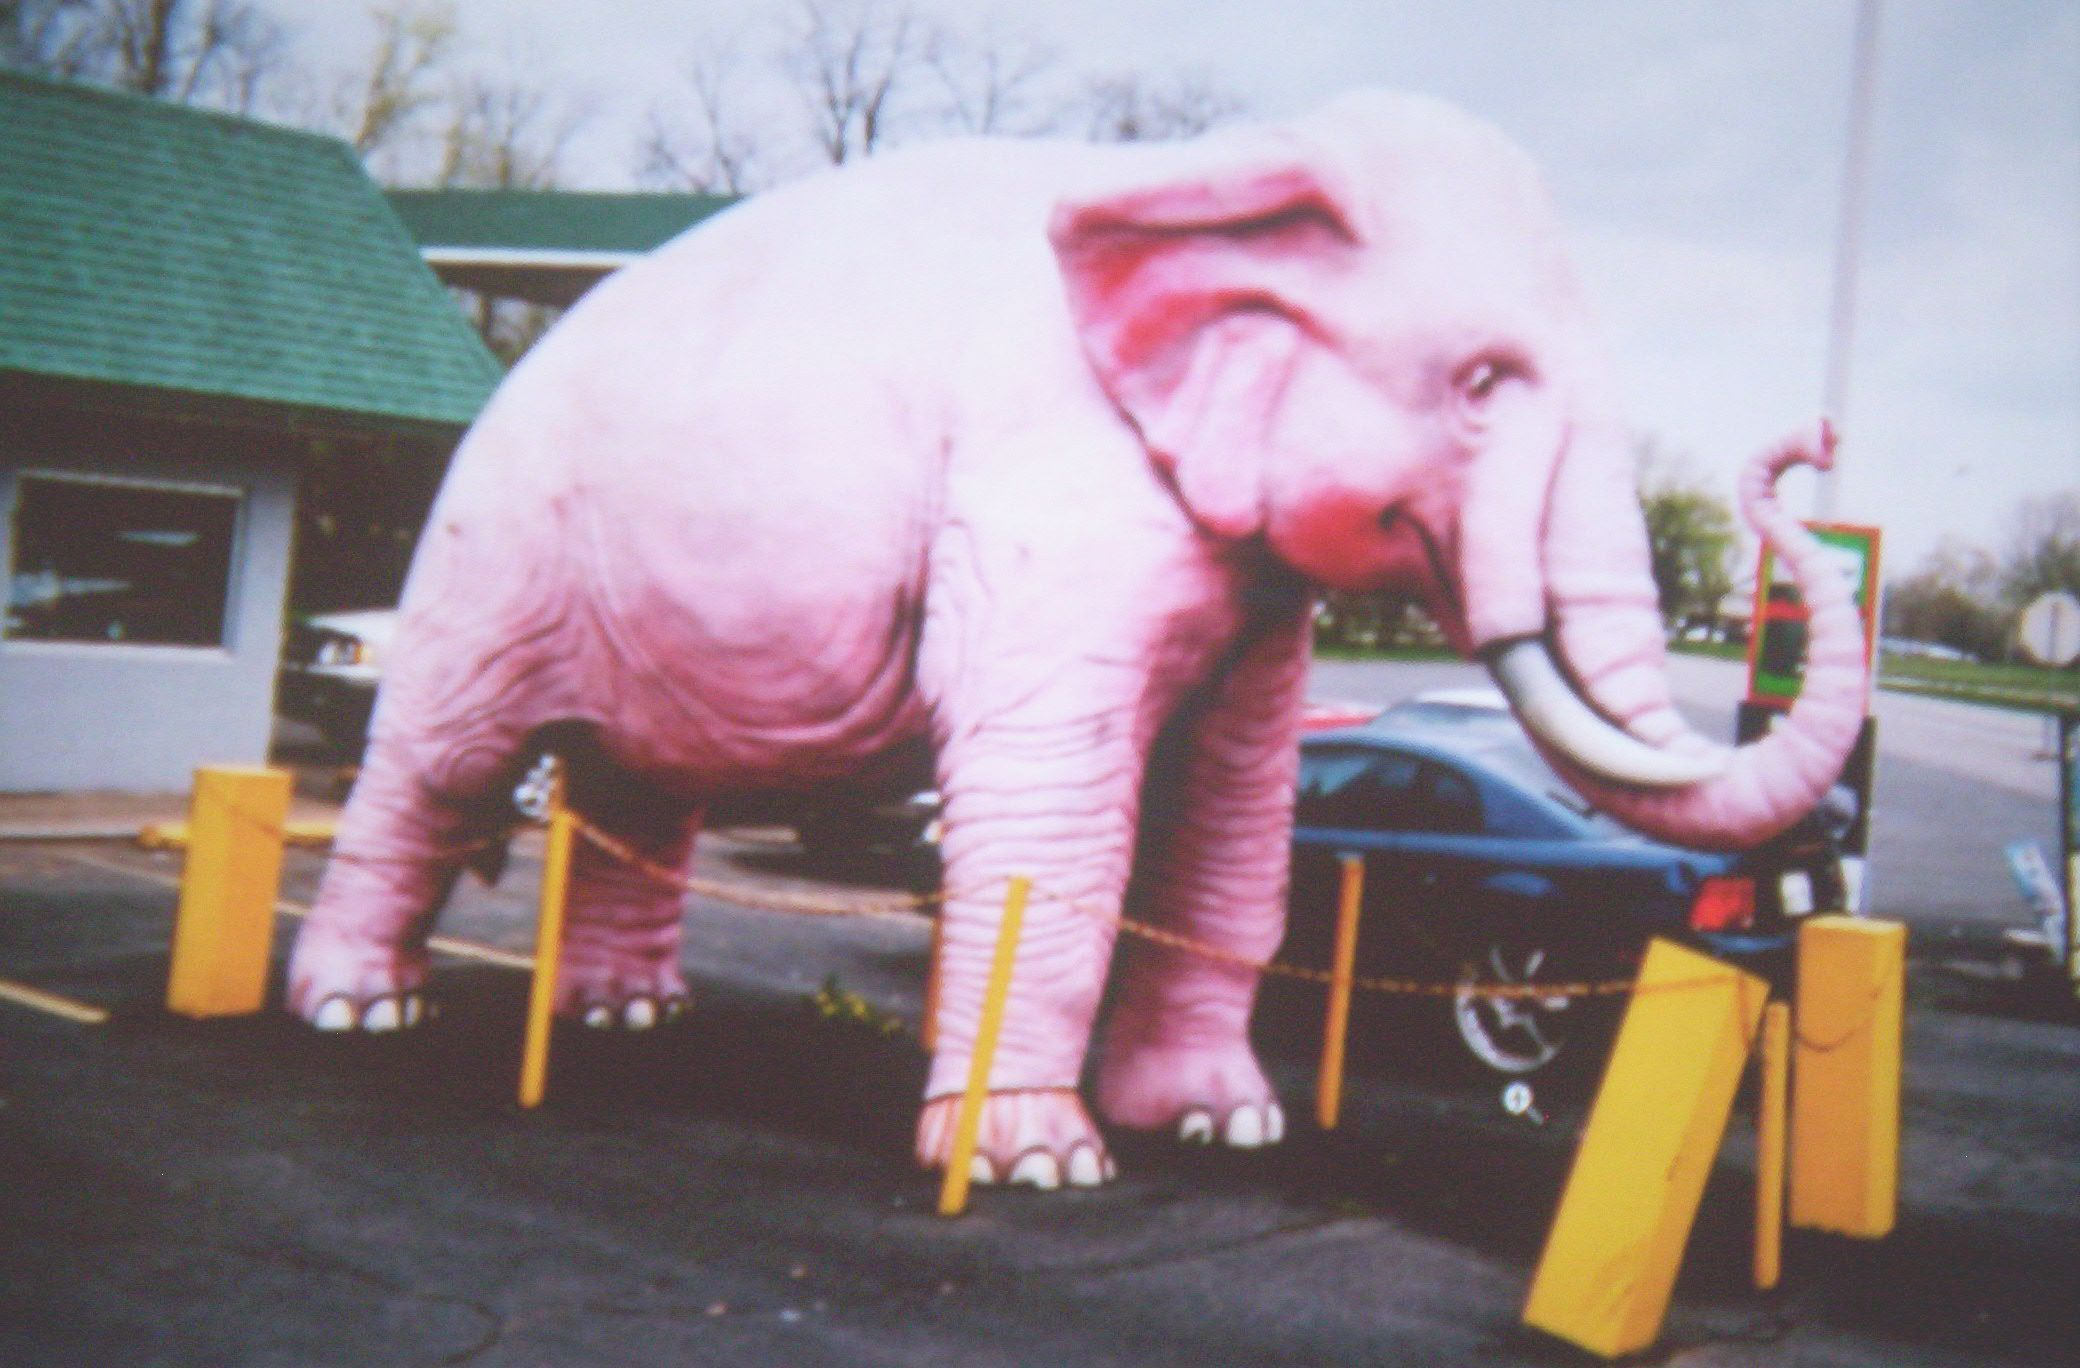 The Pink Elephant in the Room. (By RANDY PRITCHETT [Public domain], via Wikimedia Commons)